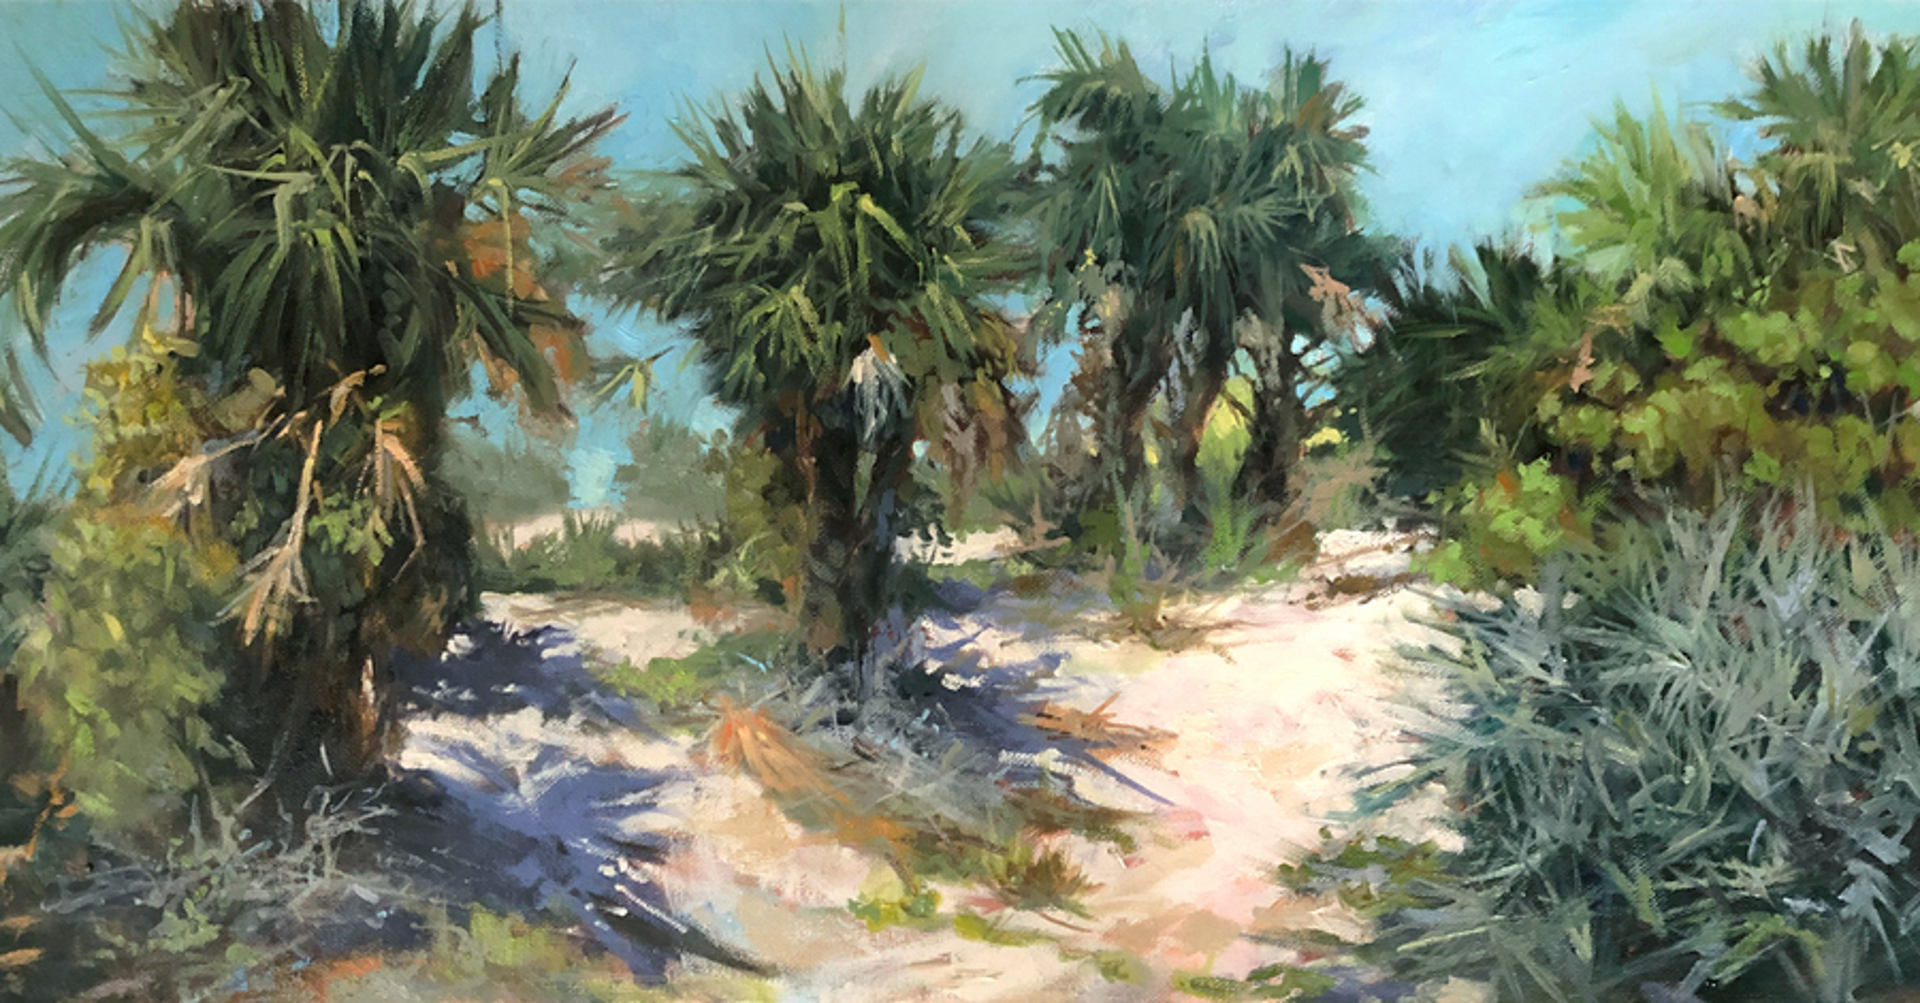 Dune Palms by Lynne Polley